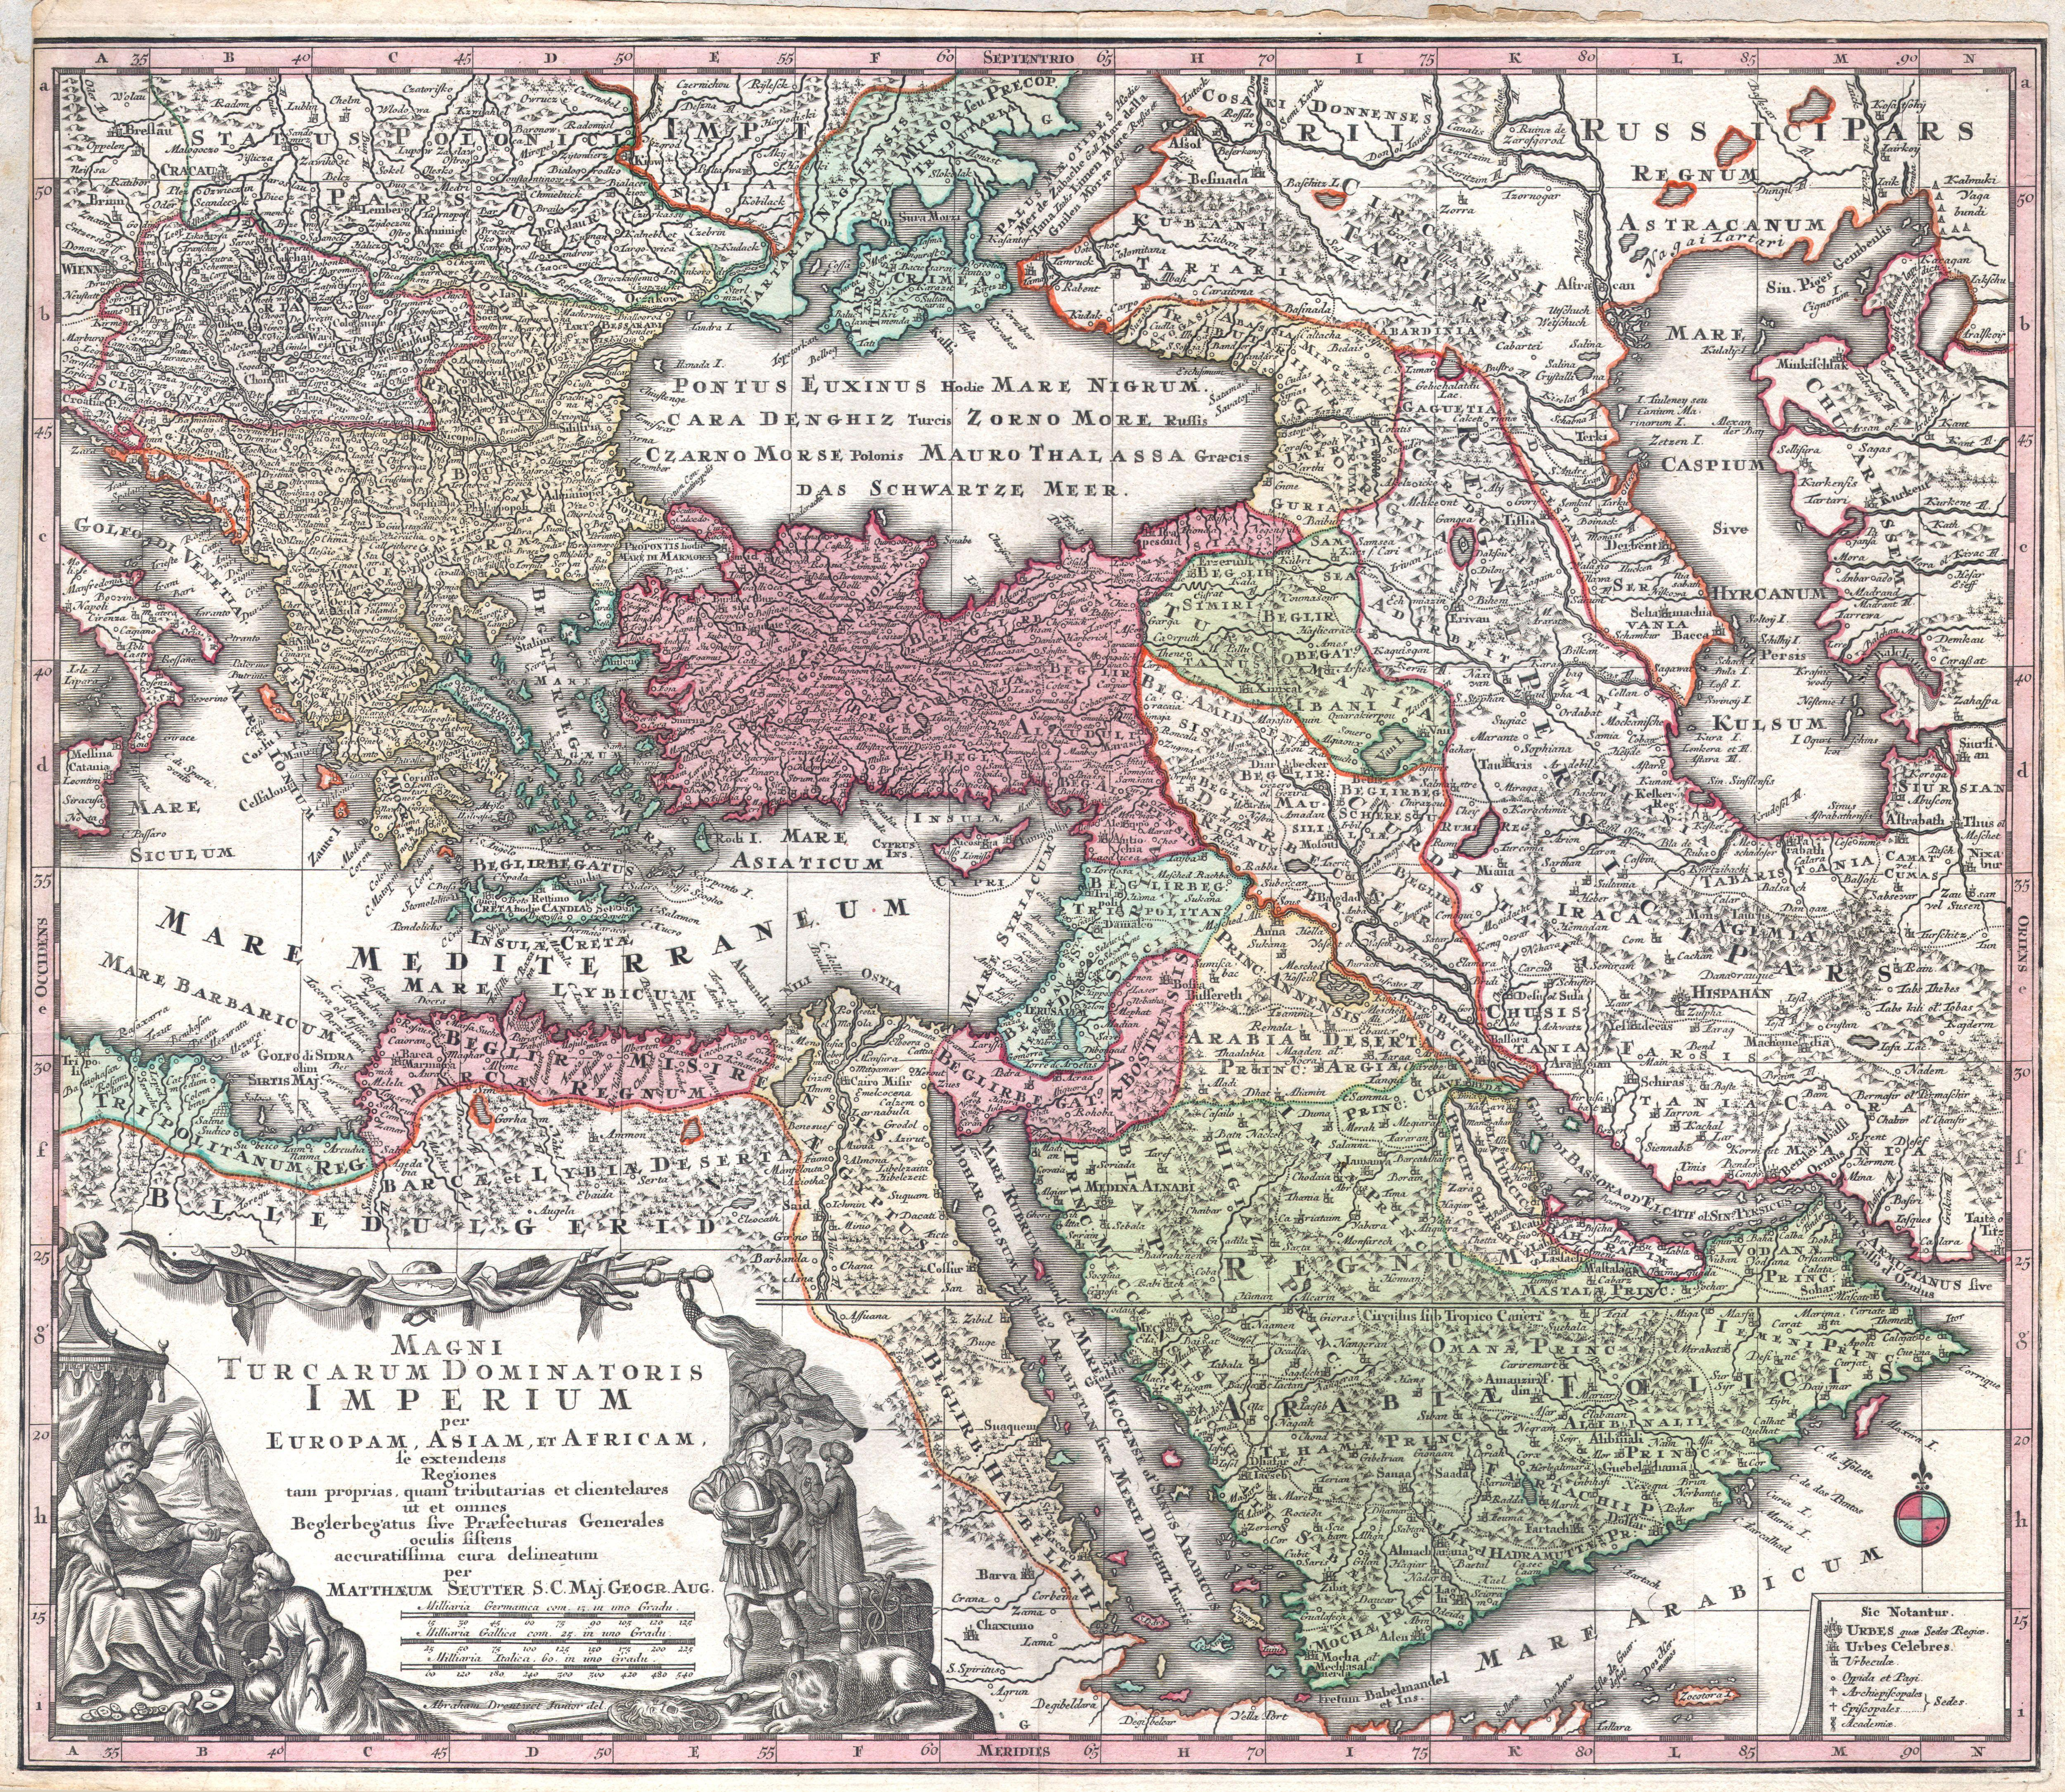 c. 1730 map of the Ottoman Empire, including Greece, Turkey, Persia, Egypt and Arabia